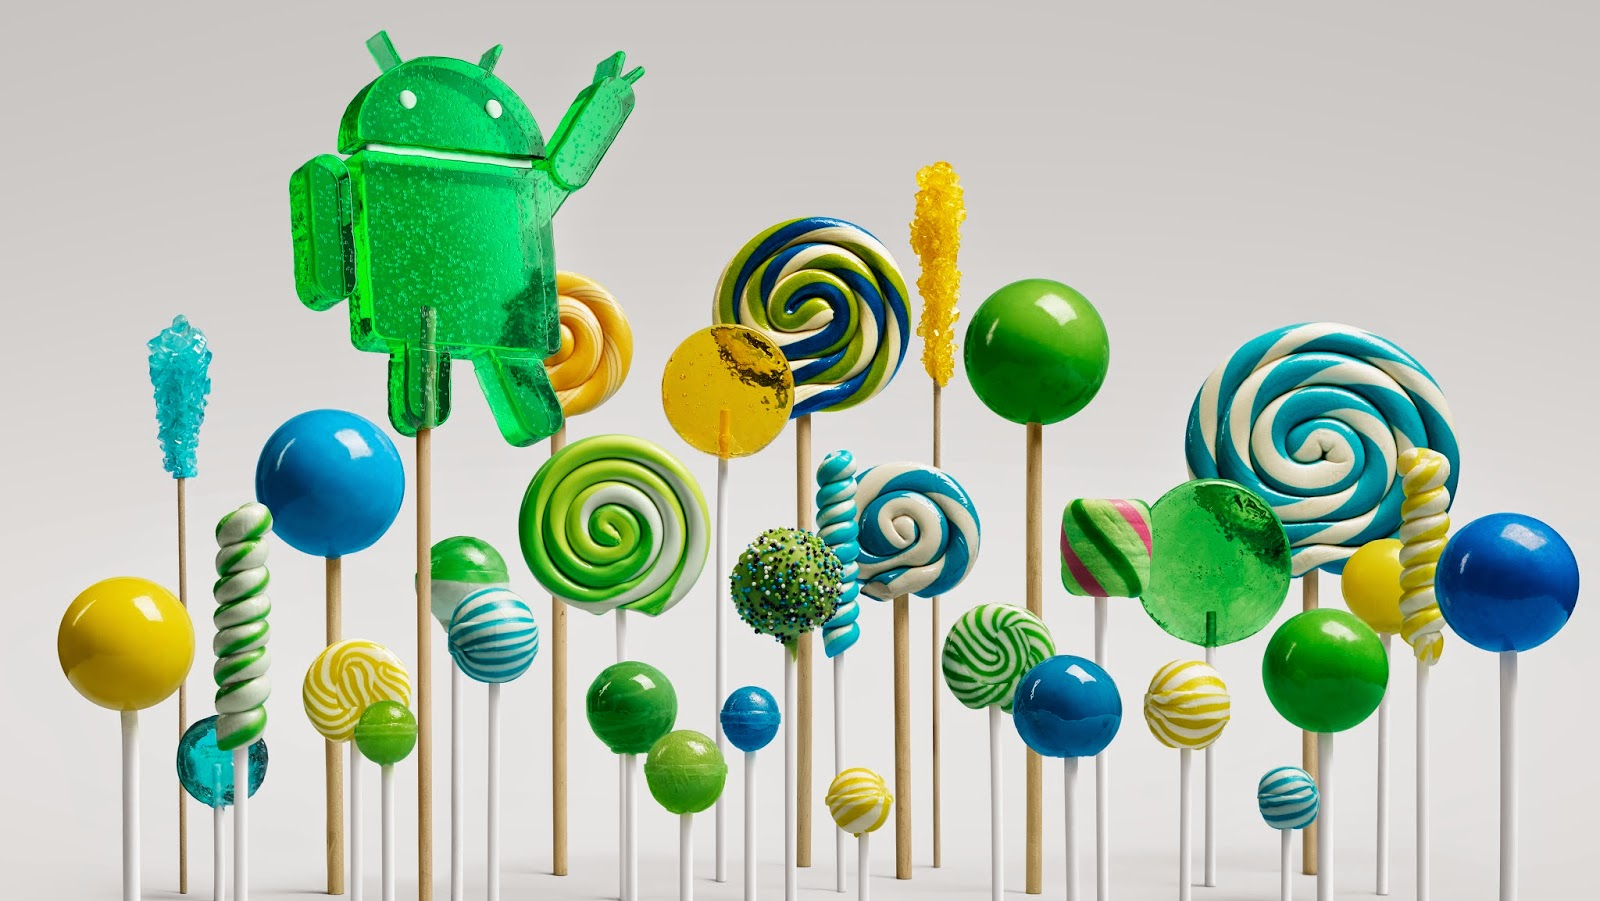 Lollipop is made for a world